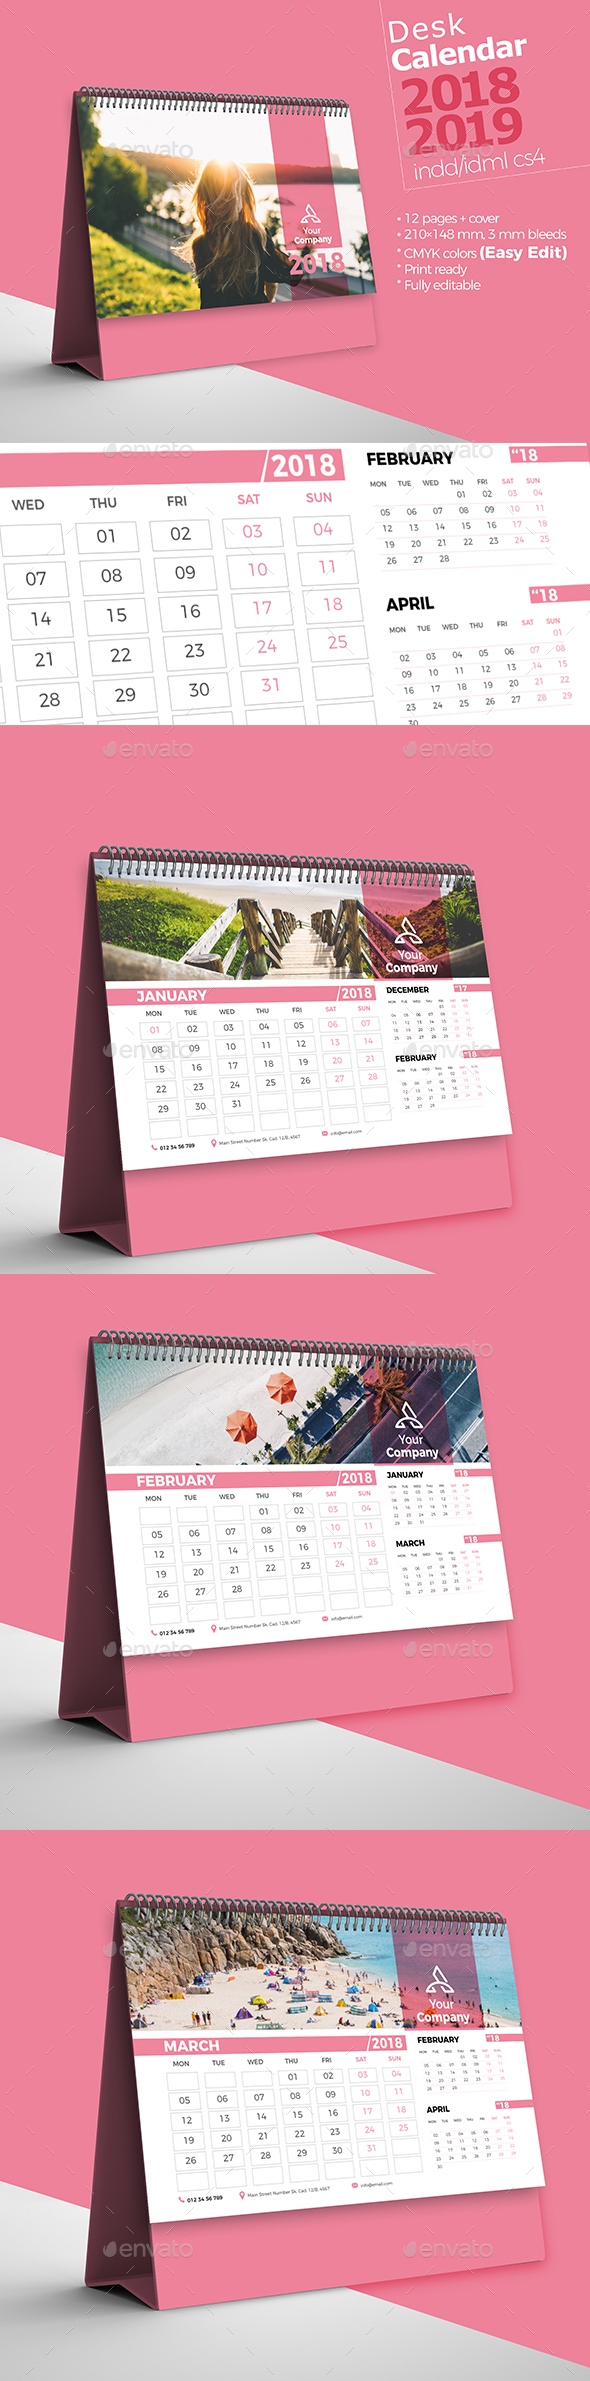 Colorful Desk Calendar 2018-19